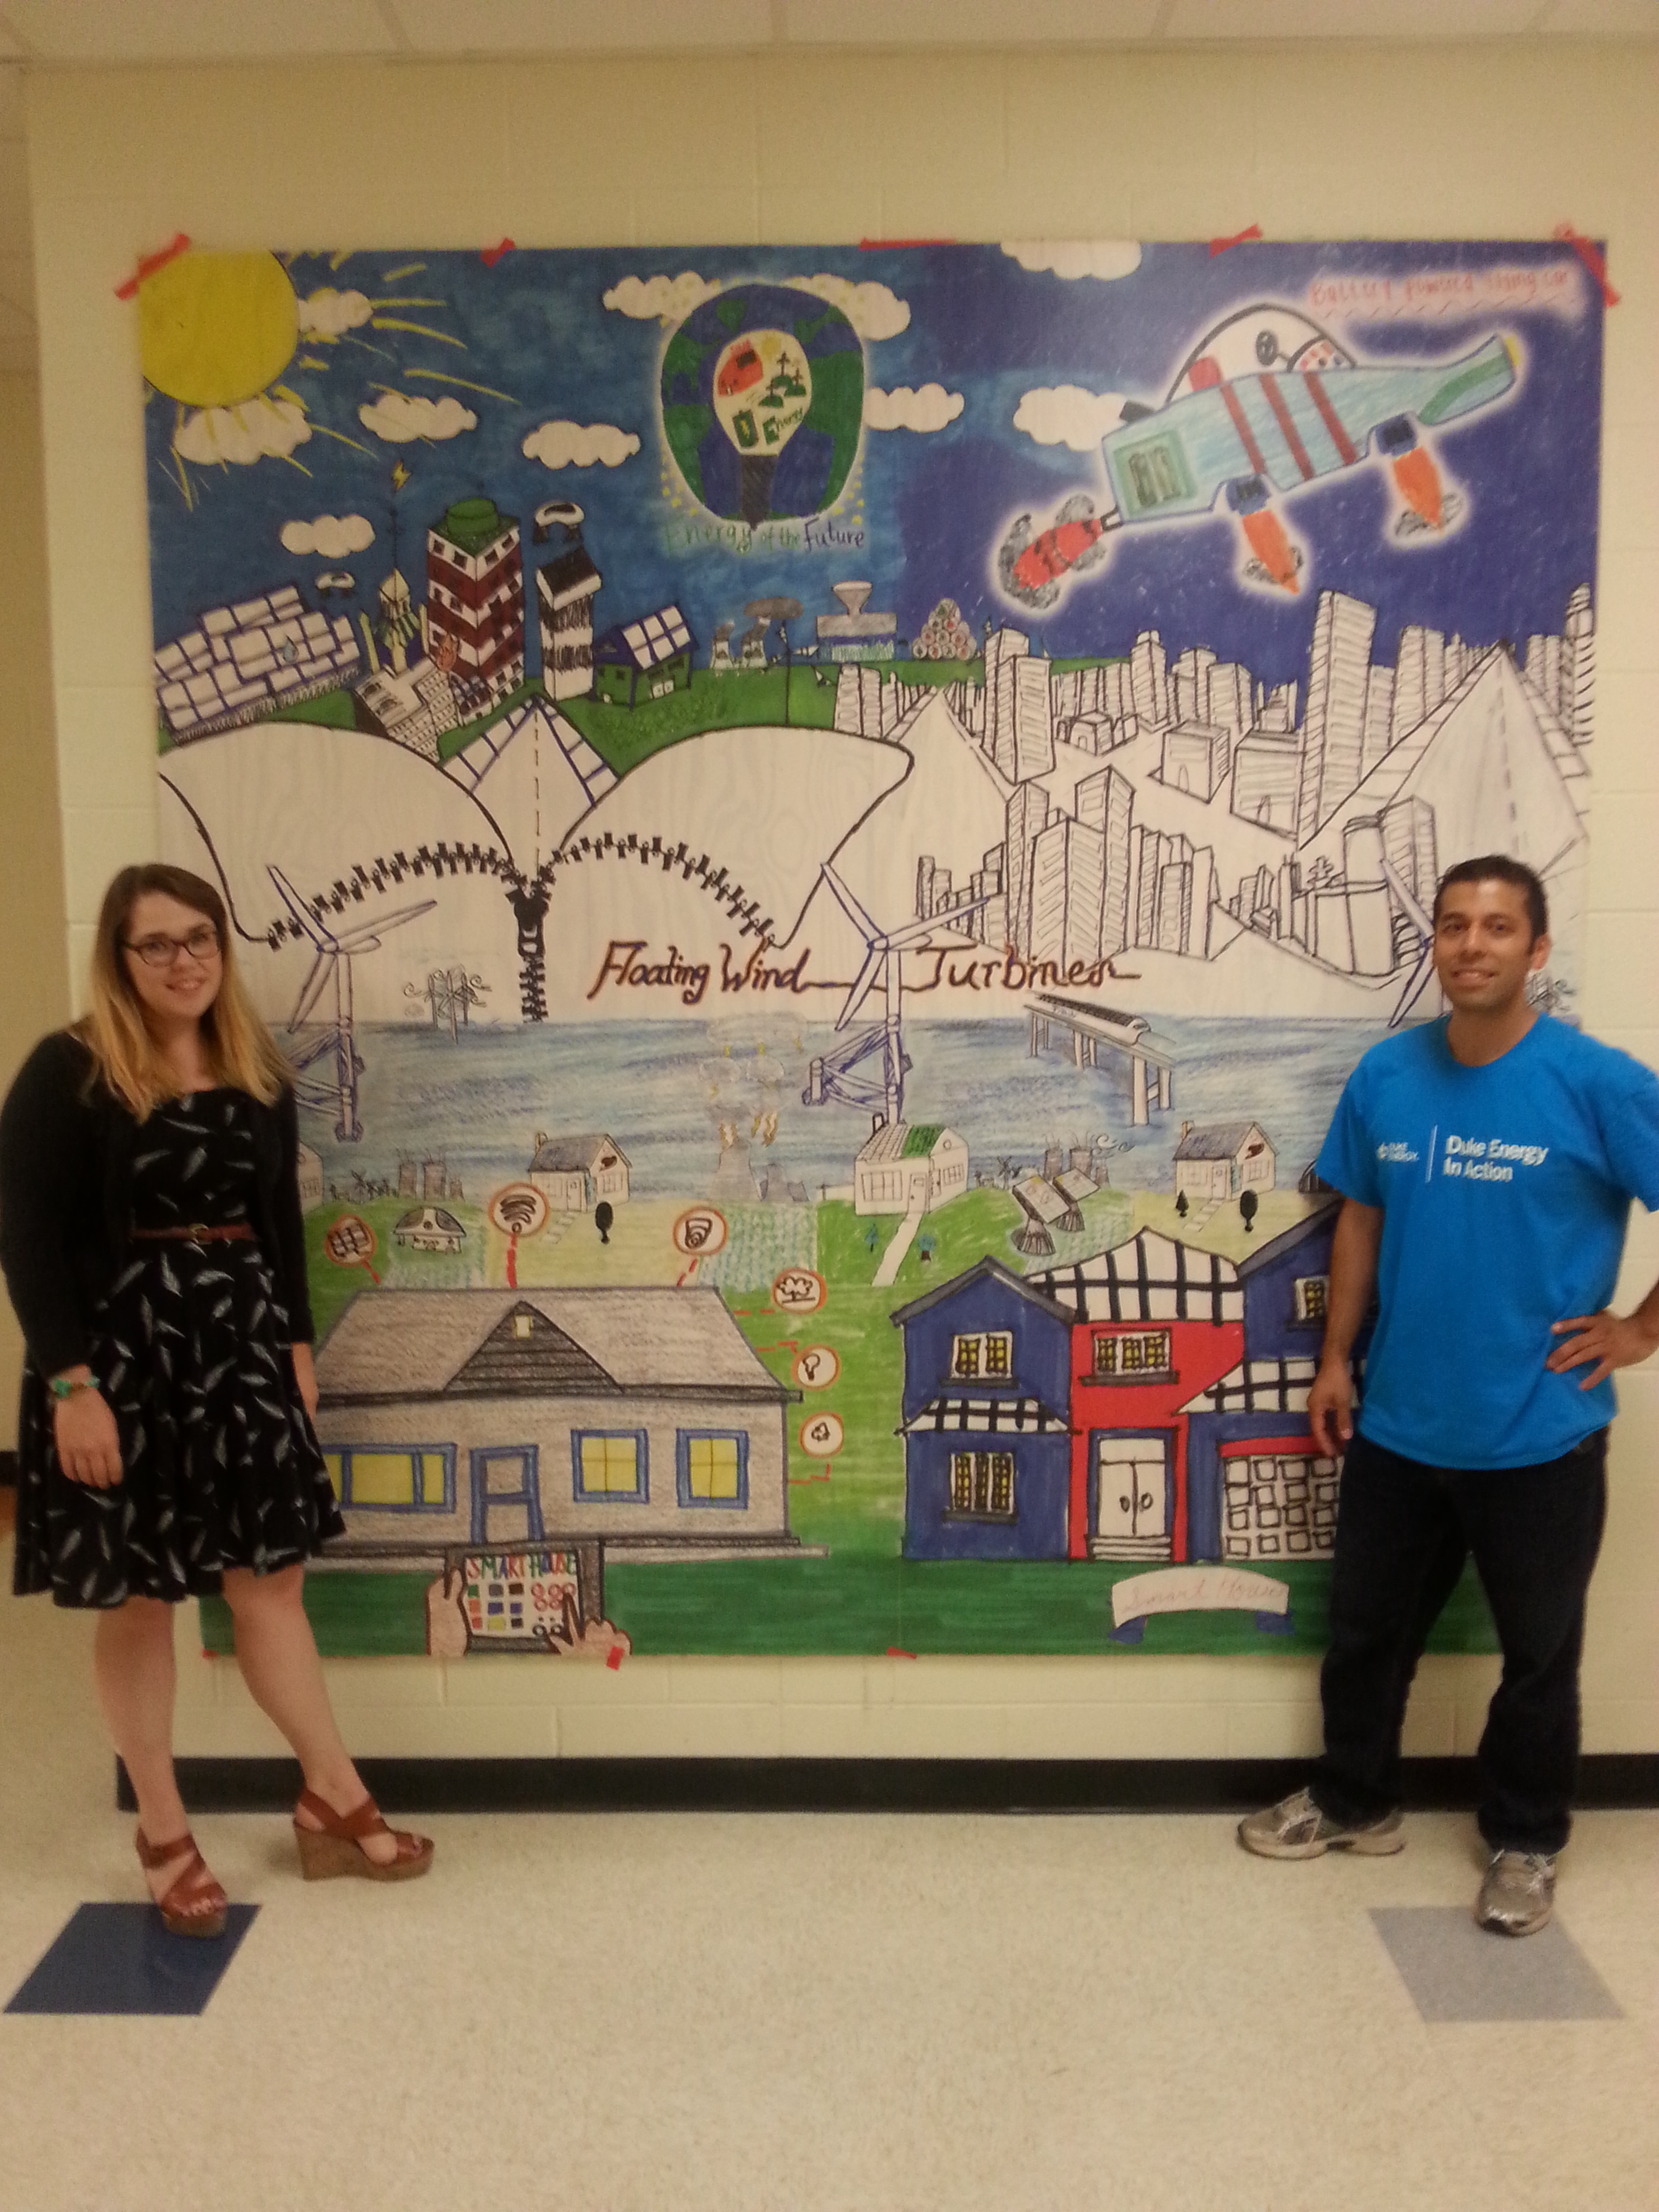 Duke-Energy-Mural-2-Art-Julio-Gonzalez.jpg